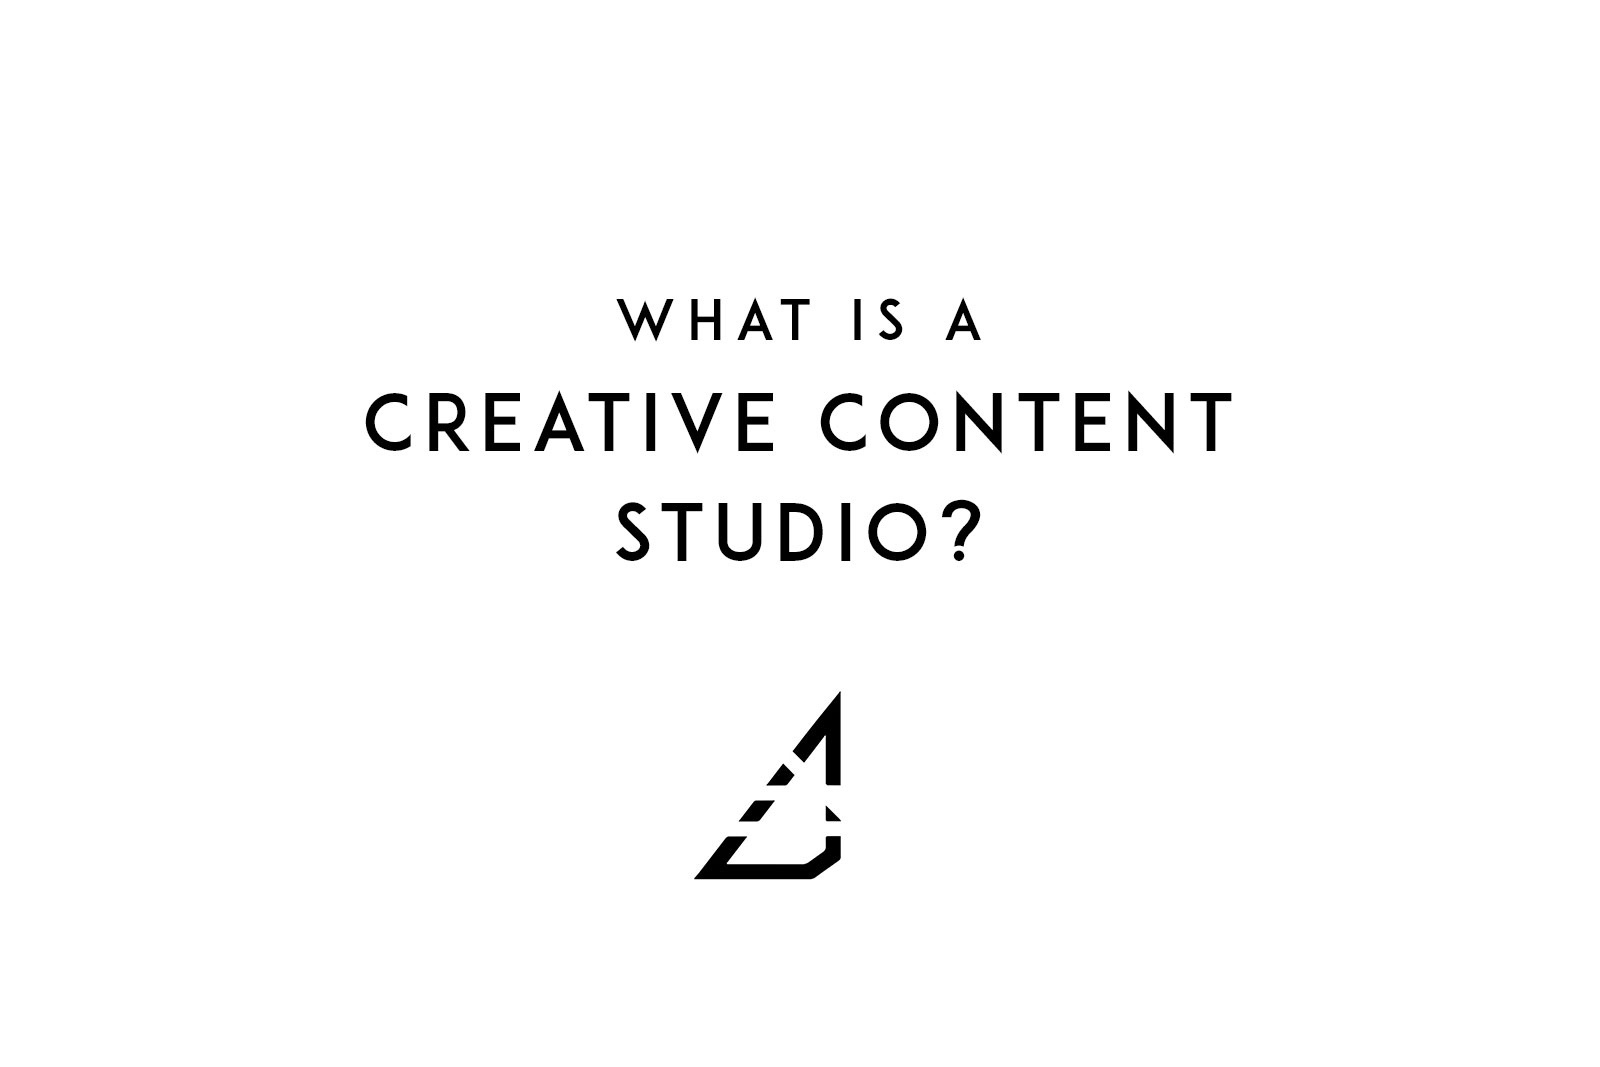 What is a creative content studio?